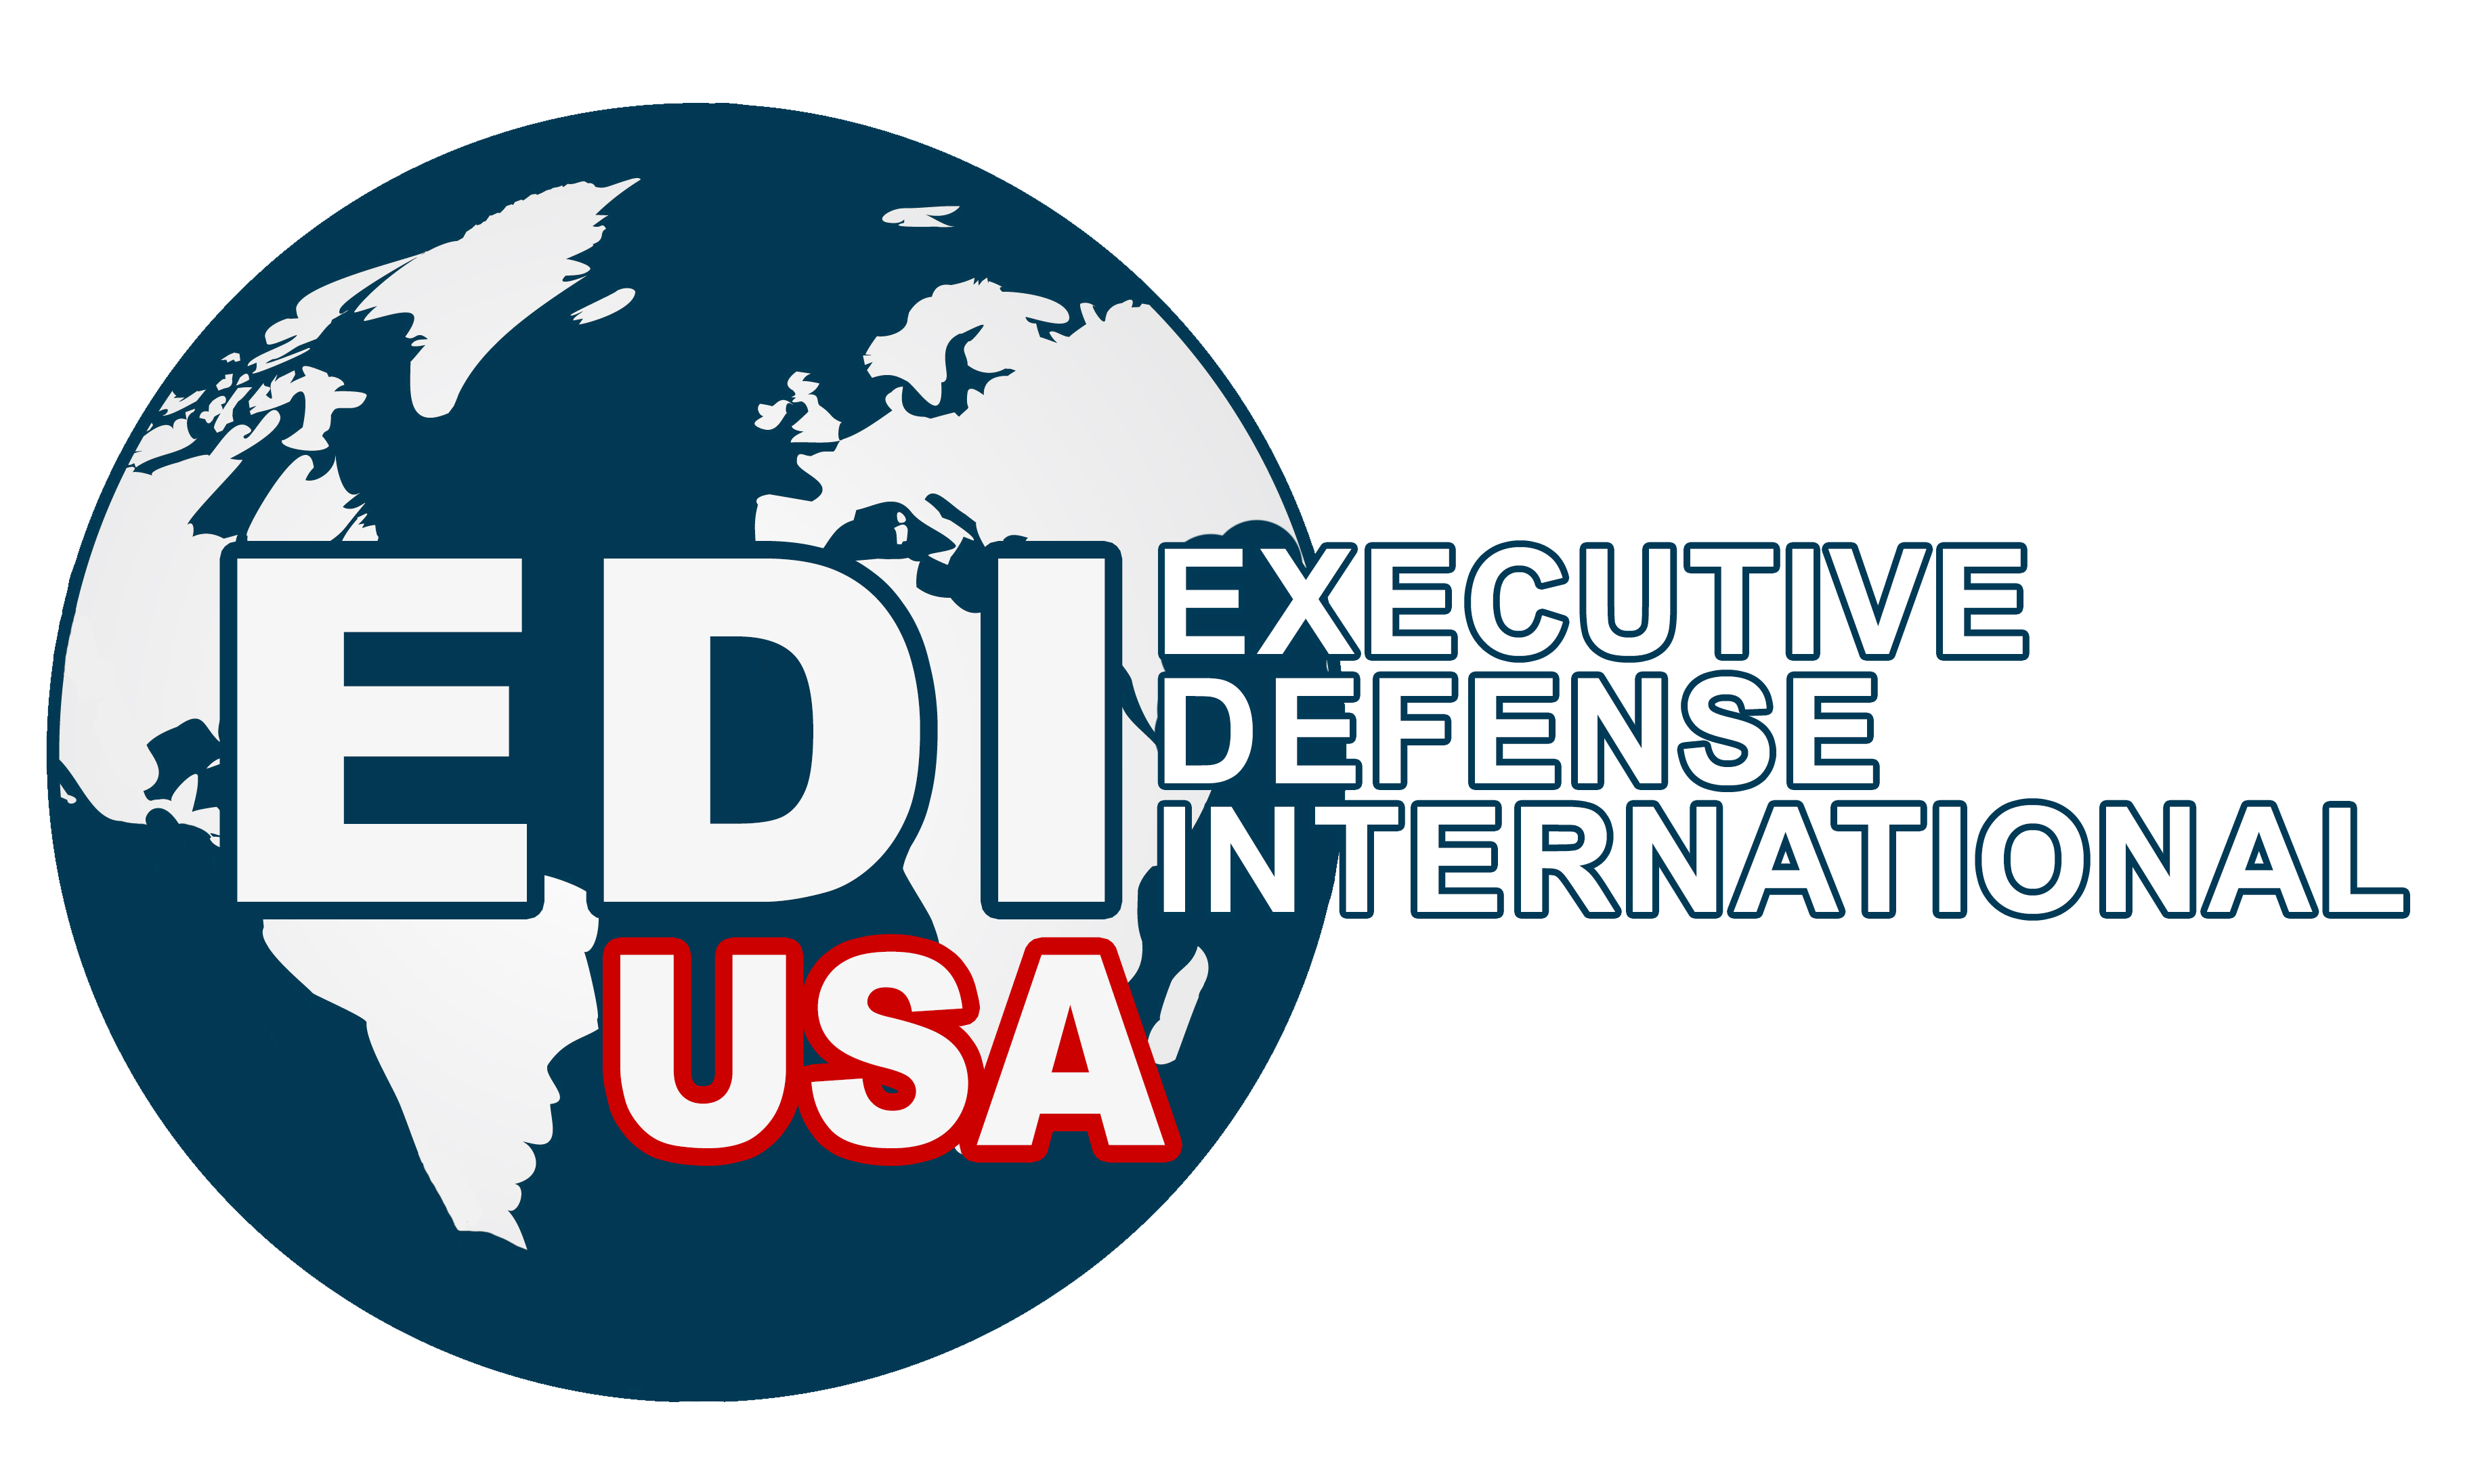 Executive Defense International